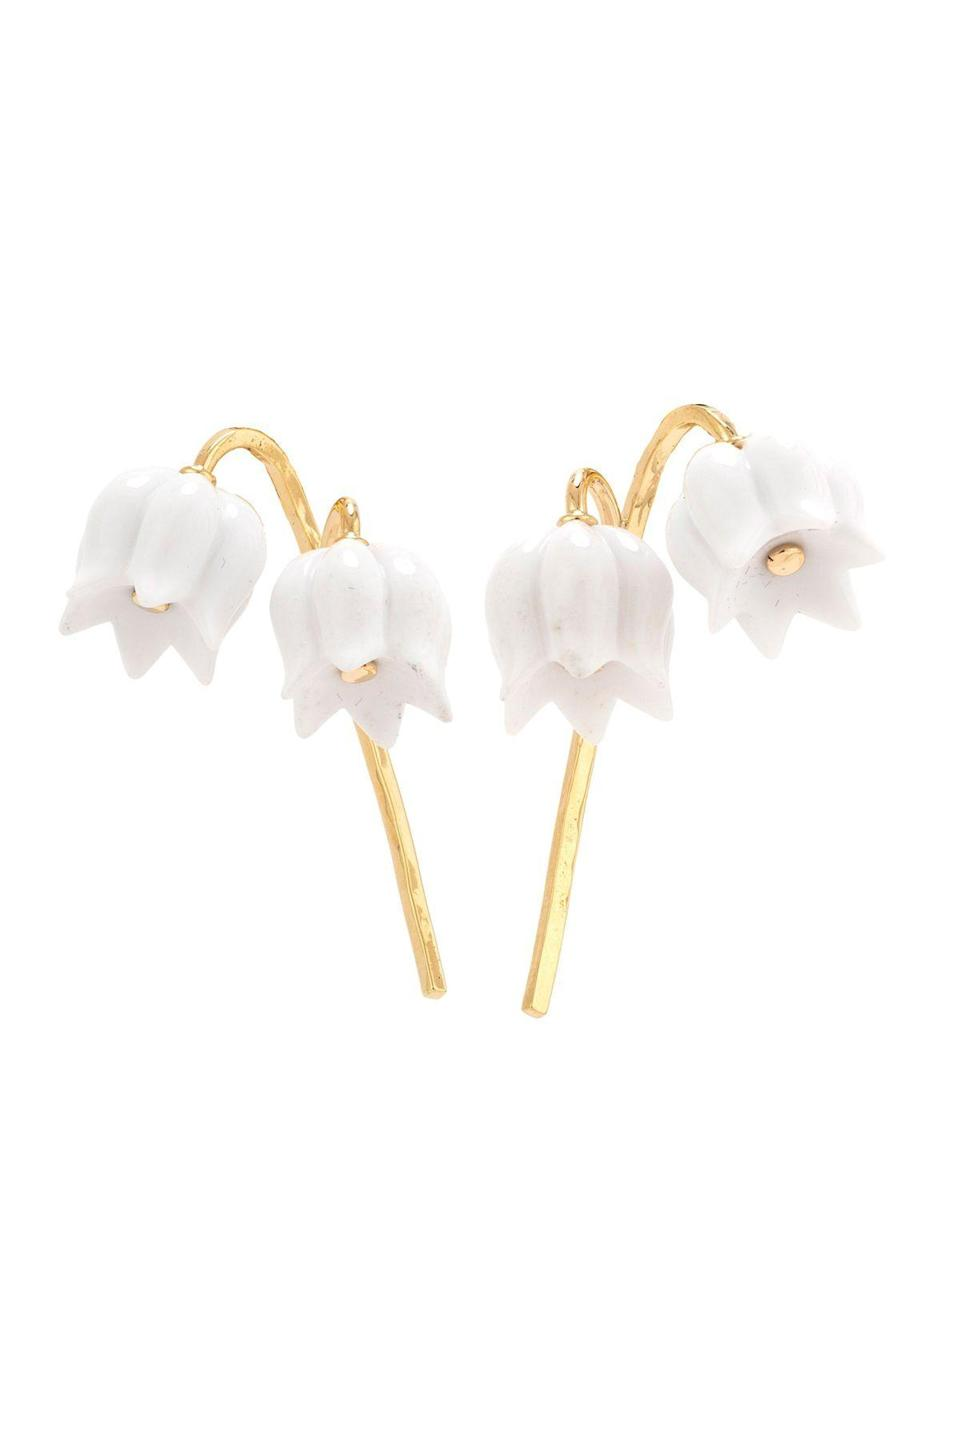 """<p><strong>Maja DuBrul</strong></p><p>majadubrul.com</p><p><strong>$5600.00</strong></p><p><a href=""""https://www.majadubrul.com/collections/earrings/products/lily-ii-small-opal-earrings"""" rel=""""nofollow noopener"""" target=""""_blank"""" data-ylk=""""slk:Shop Now"""" class=""""link rapid-noclick-resp"""">Shop Now</a></p><p>Maja DuBrul taps into her art history background to create miniature wearable works of sculpture. Here, the lily of the valley motif is rendered in white opal, which is hand-carved in Germany, and mounted on a solid hammered gold stem. And while the beloved flowers are as famous for their beauty and scent as they are for their ephemerality, these earrings will last forever.</p>"""